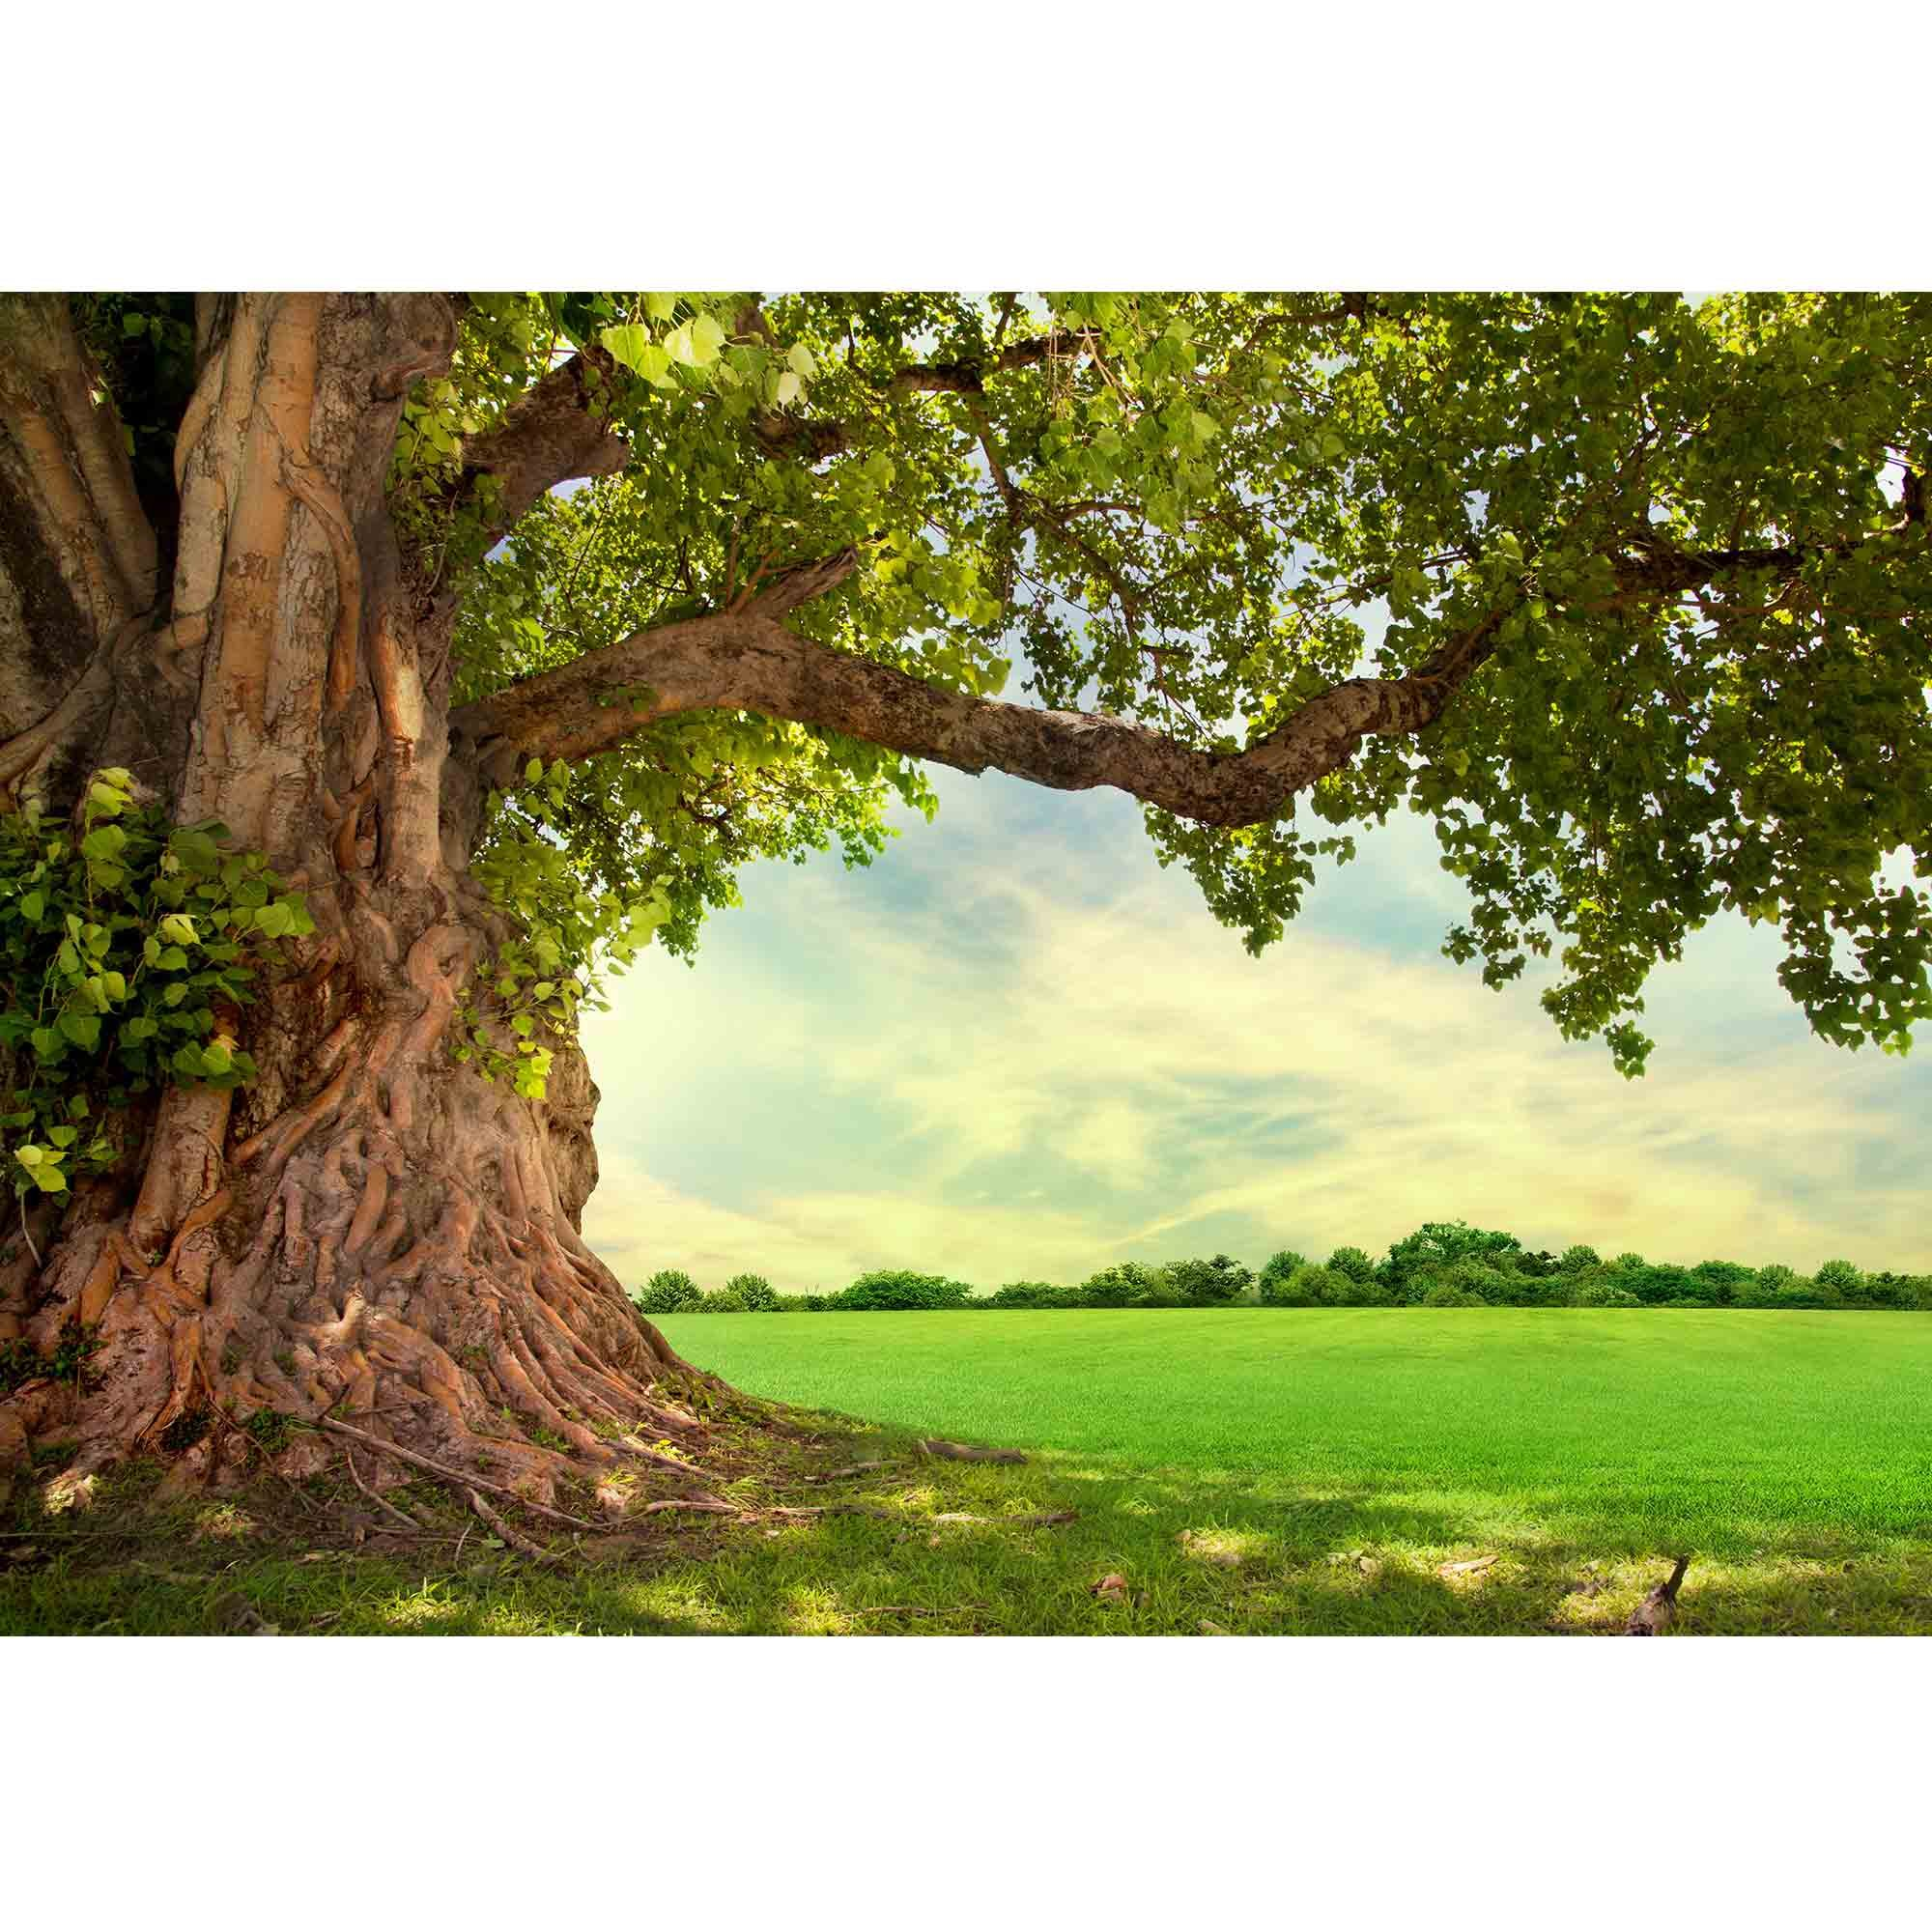 wall26 - Spring Meadow with Big Tree with Fresh Green Leaves - Removable Wall Mural | Self-Adhesive Large Wallpaper - 100x144 inches by wall26 (Image #2)